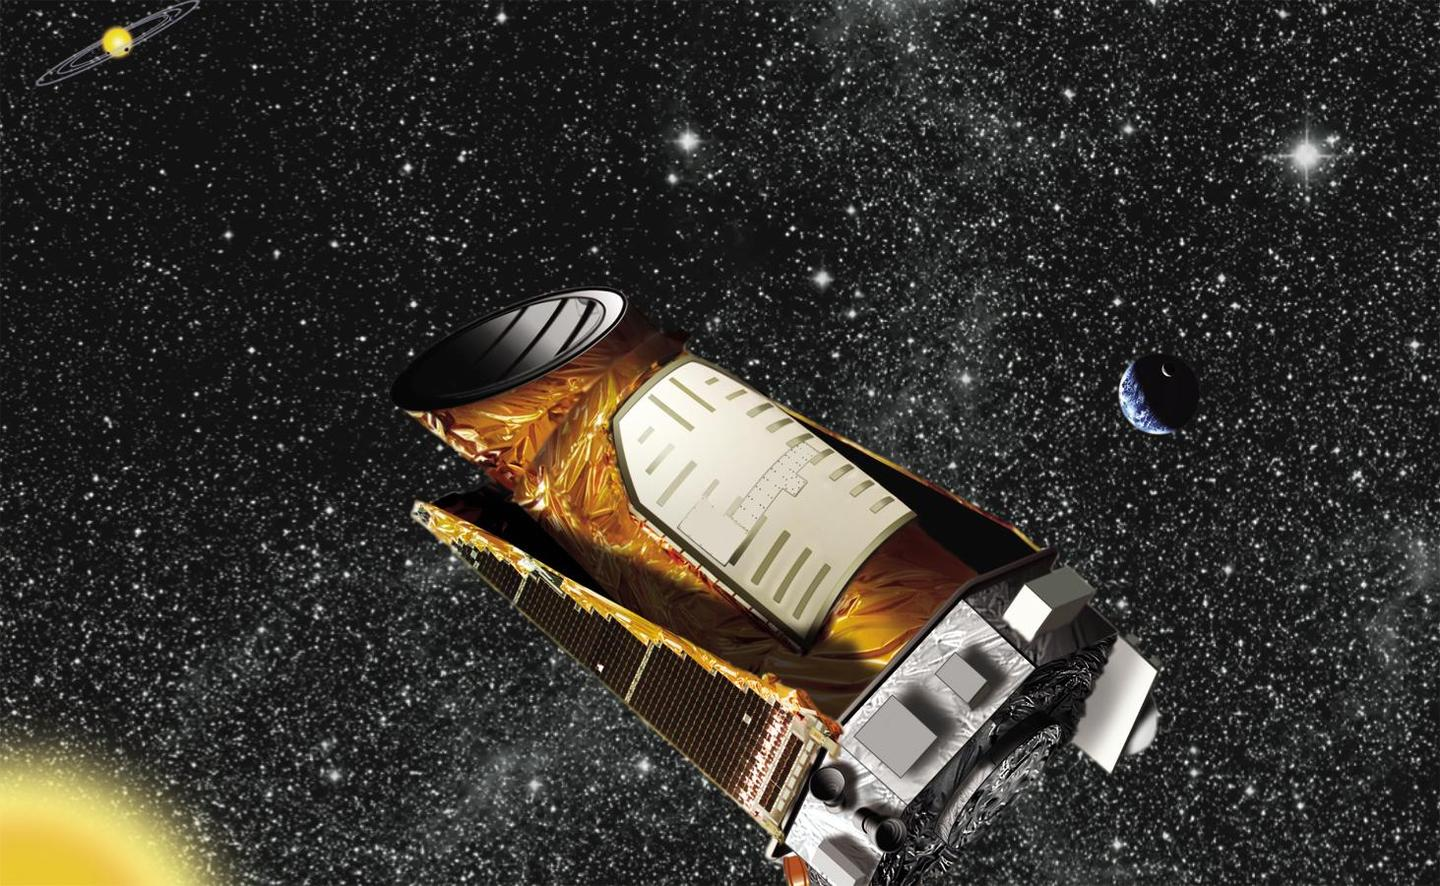 An artist's impression of the Kepler space telescope in orbit